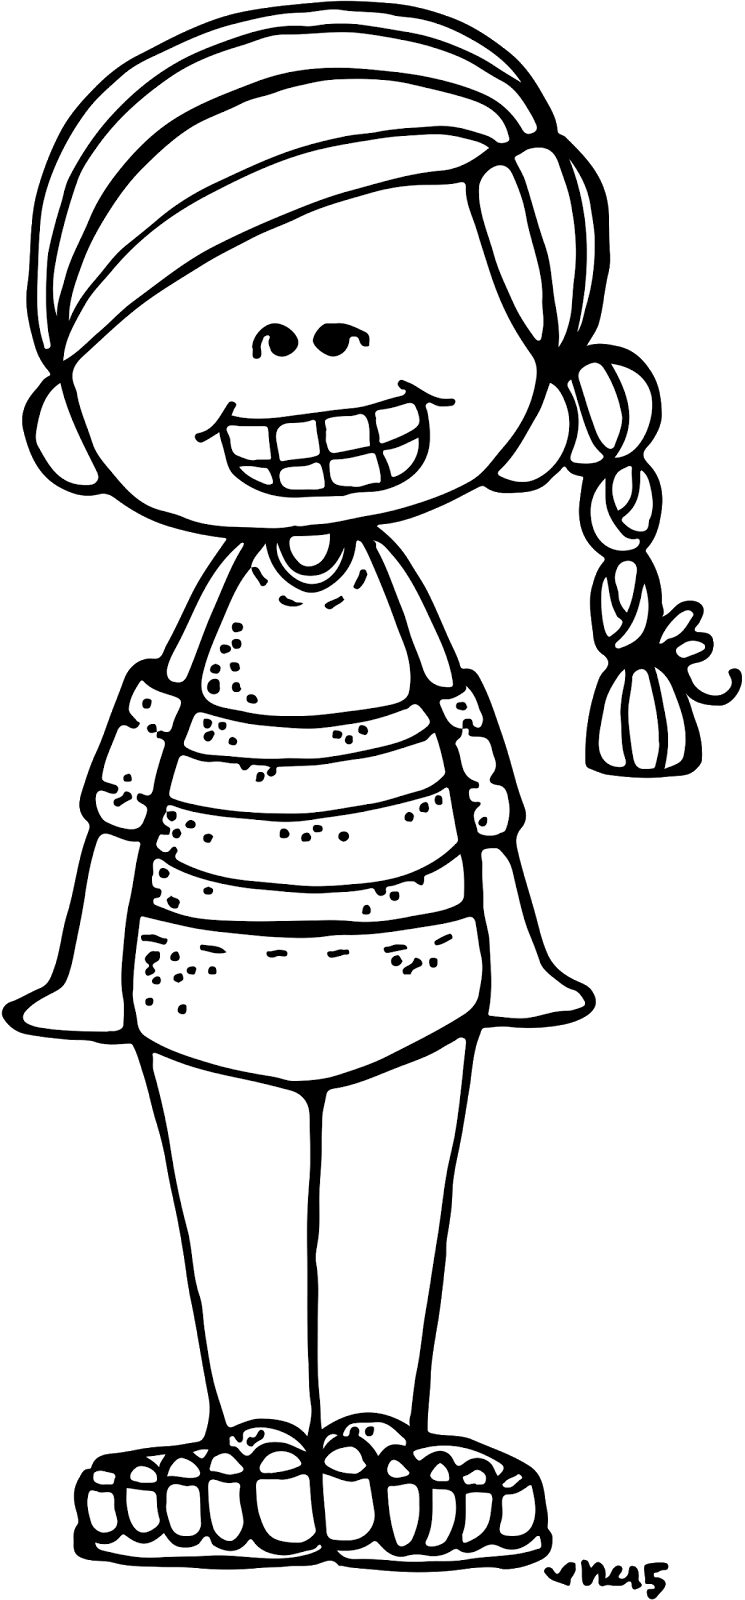 Excited clipart black and white. Melon simple melonheadz happy